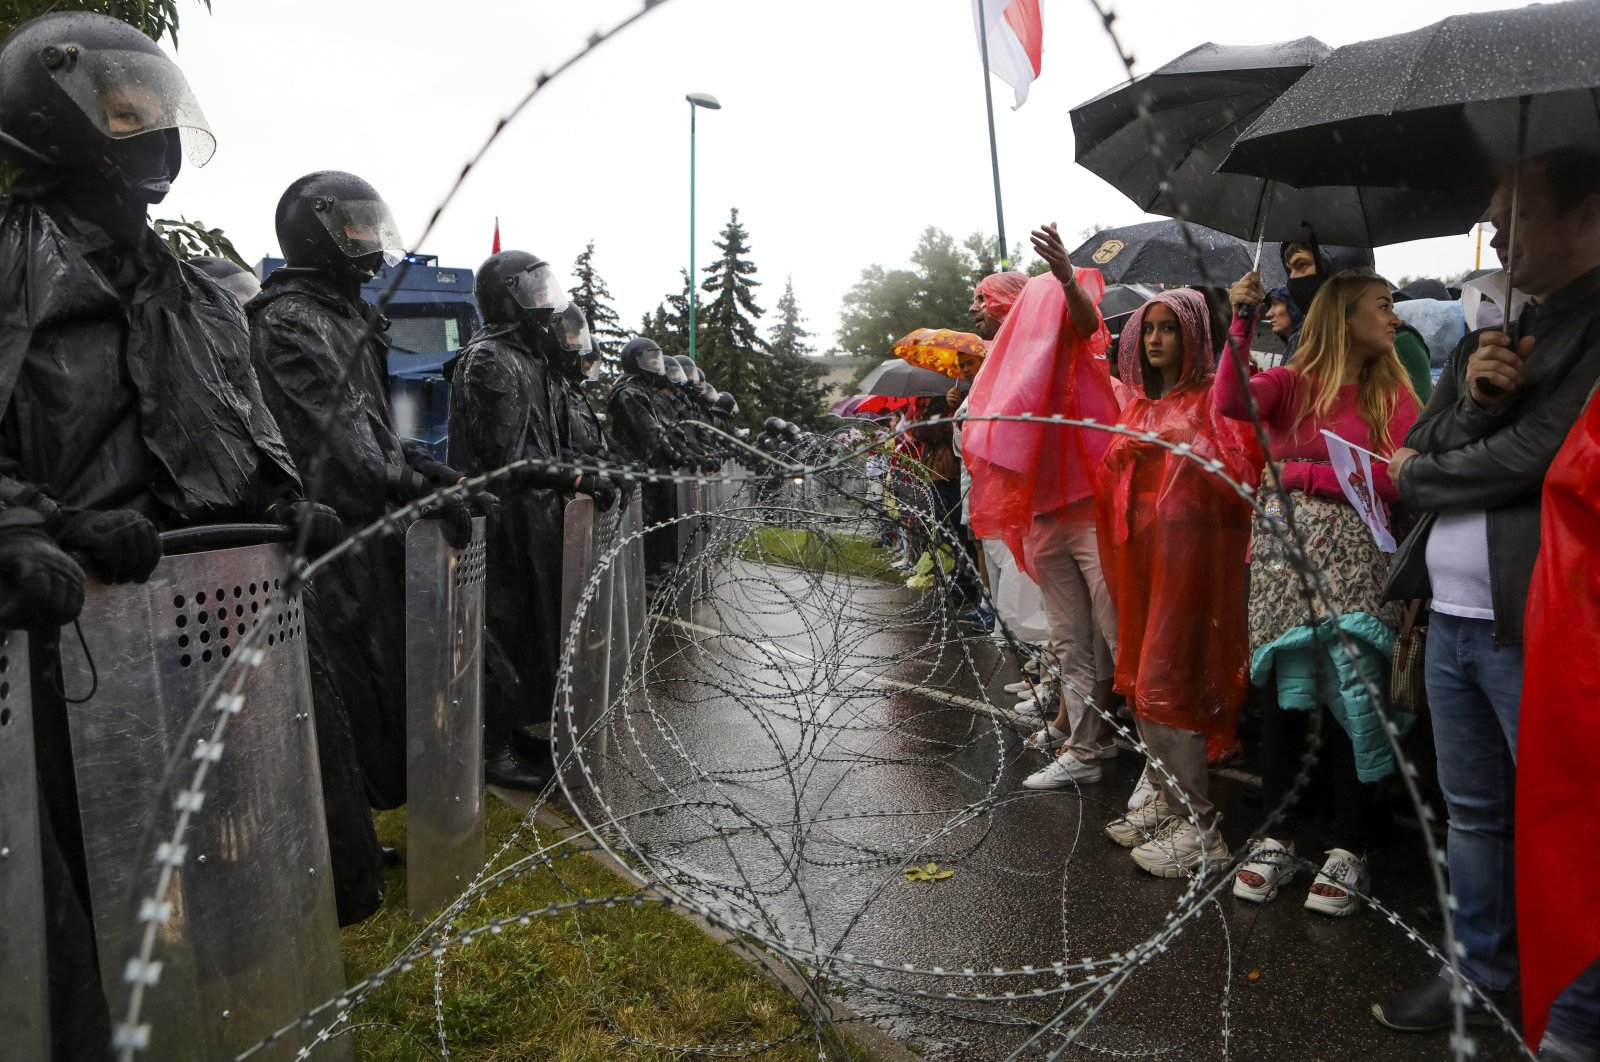 Protesters argue with police standing in front of a police barricade, Minsk, Sept. 6, 2020. (AP Photo)